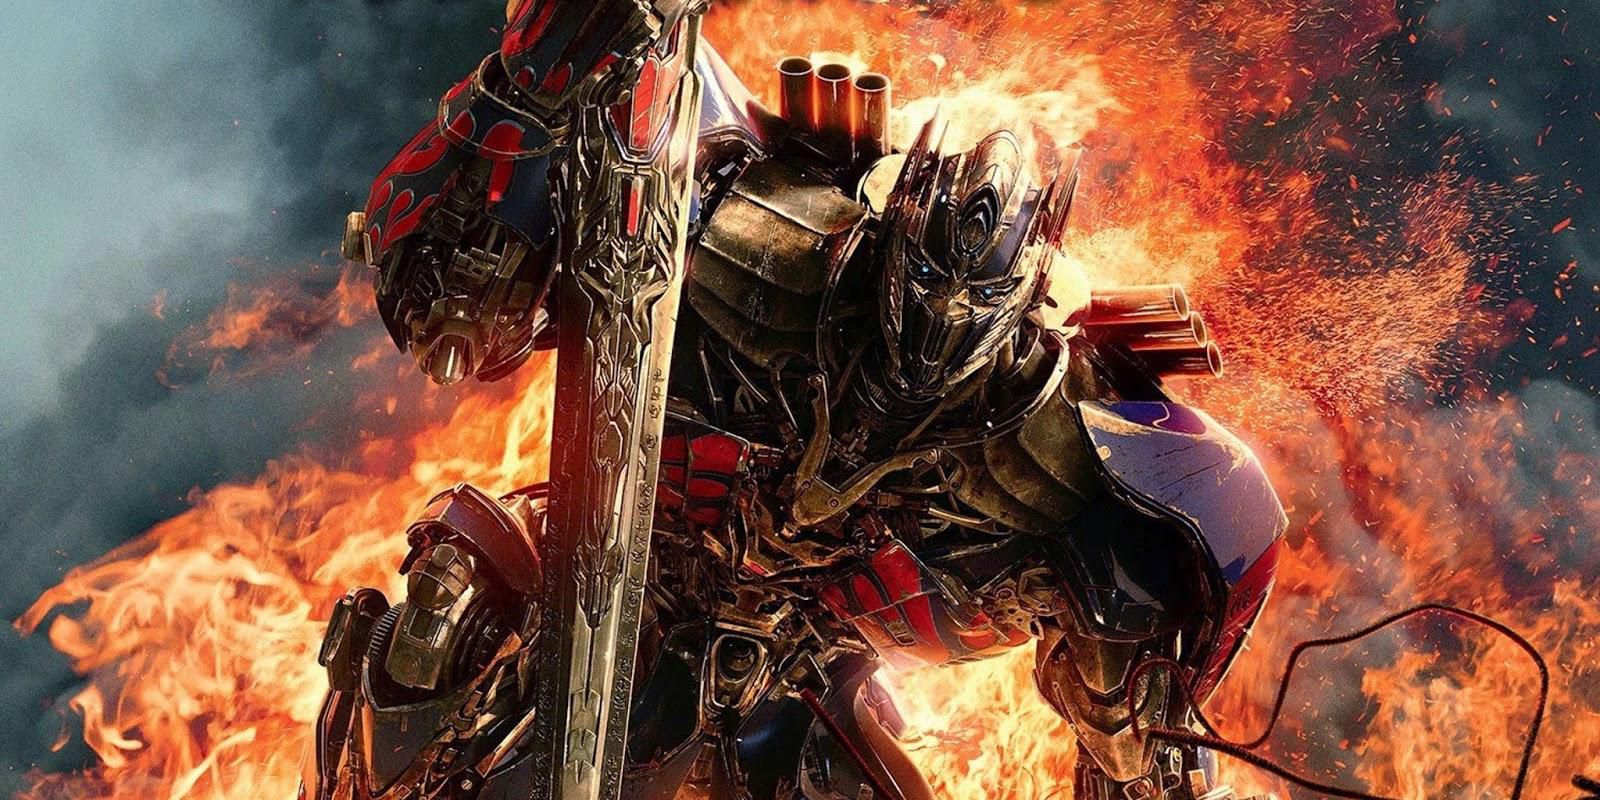 Transformers: The Last Knight se estrena en junio.(PARAMOUNT PICTURES)